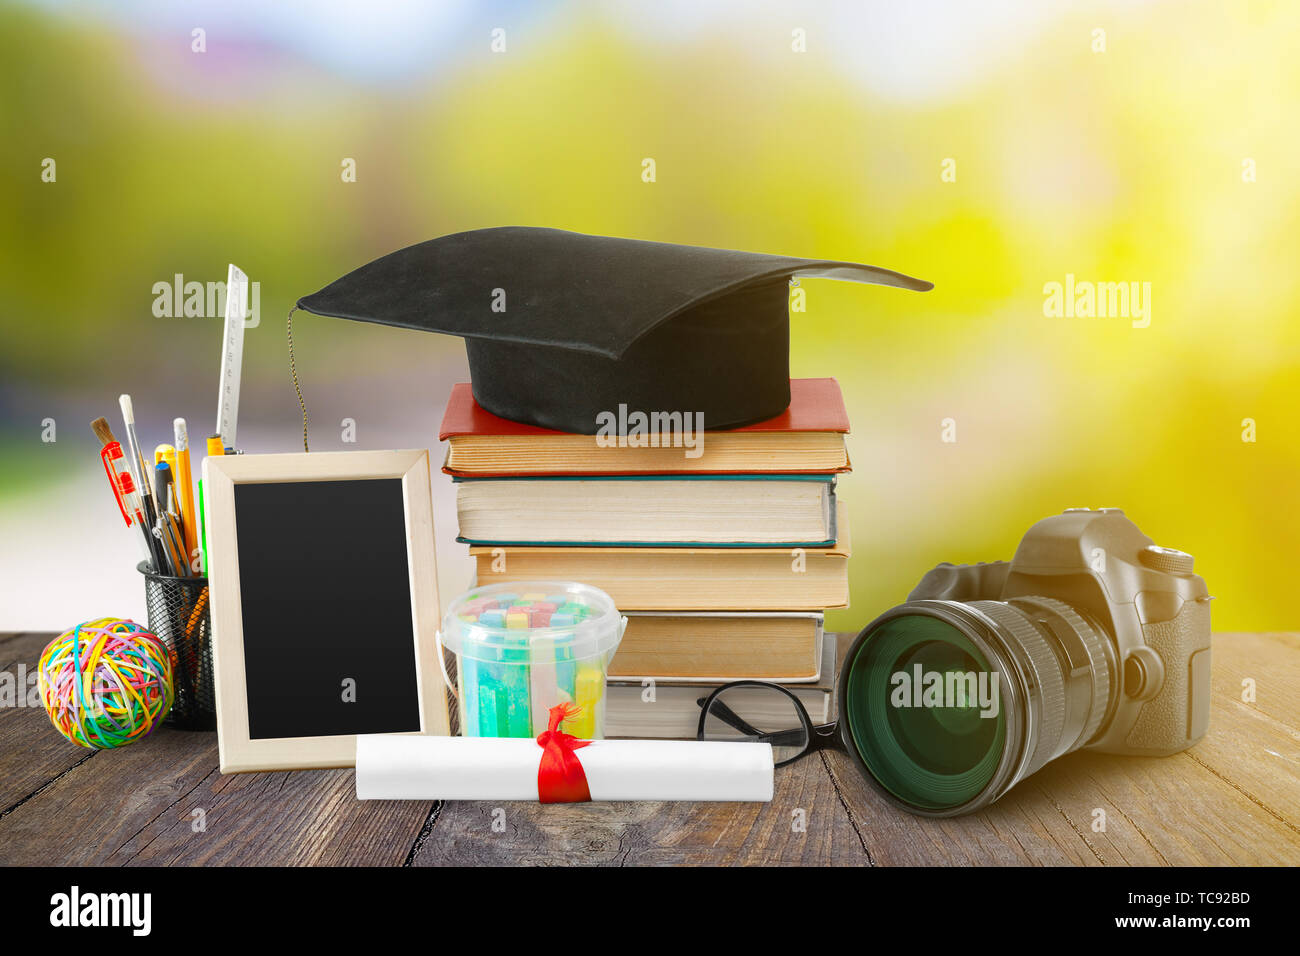 Graduation from school/university composition. Pile of books, diploma, graduation cap and camera on a desk - Stock Image